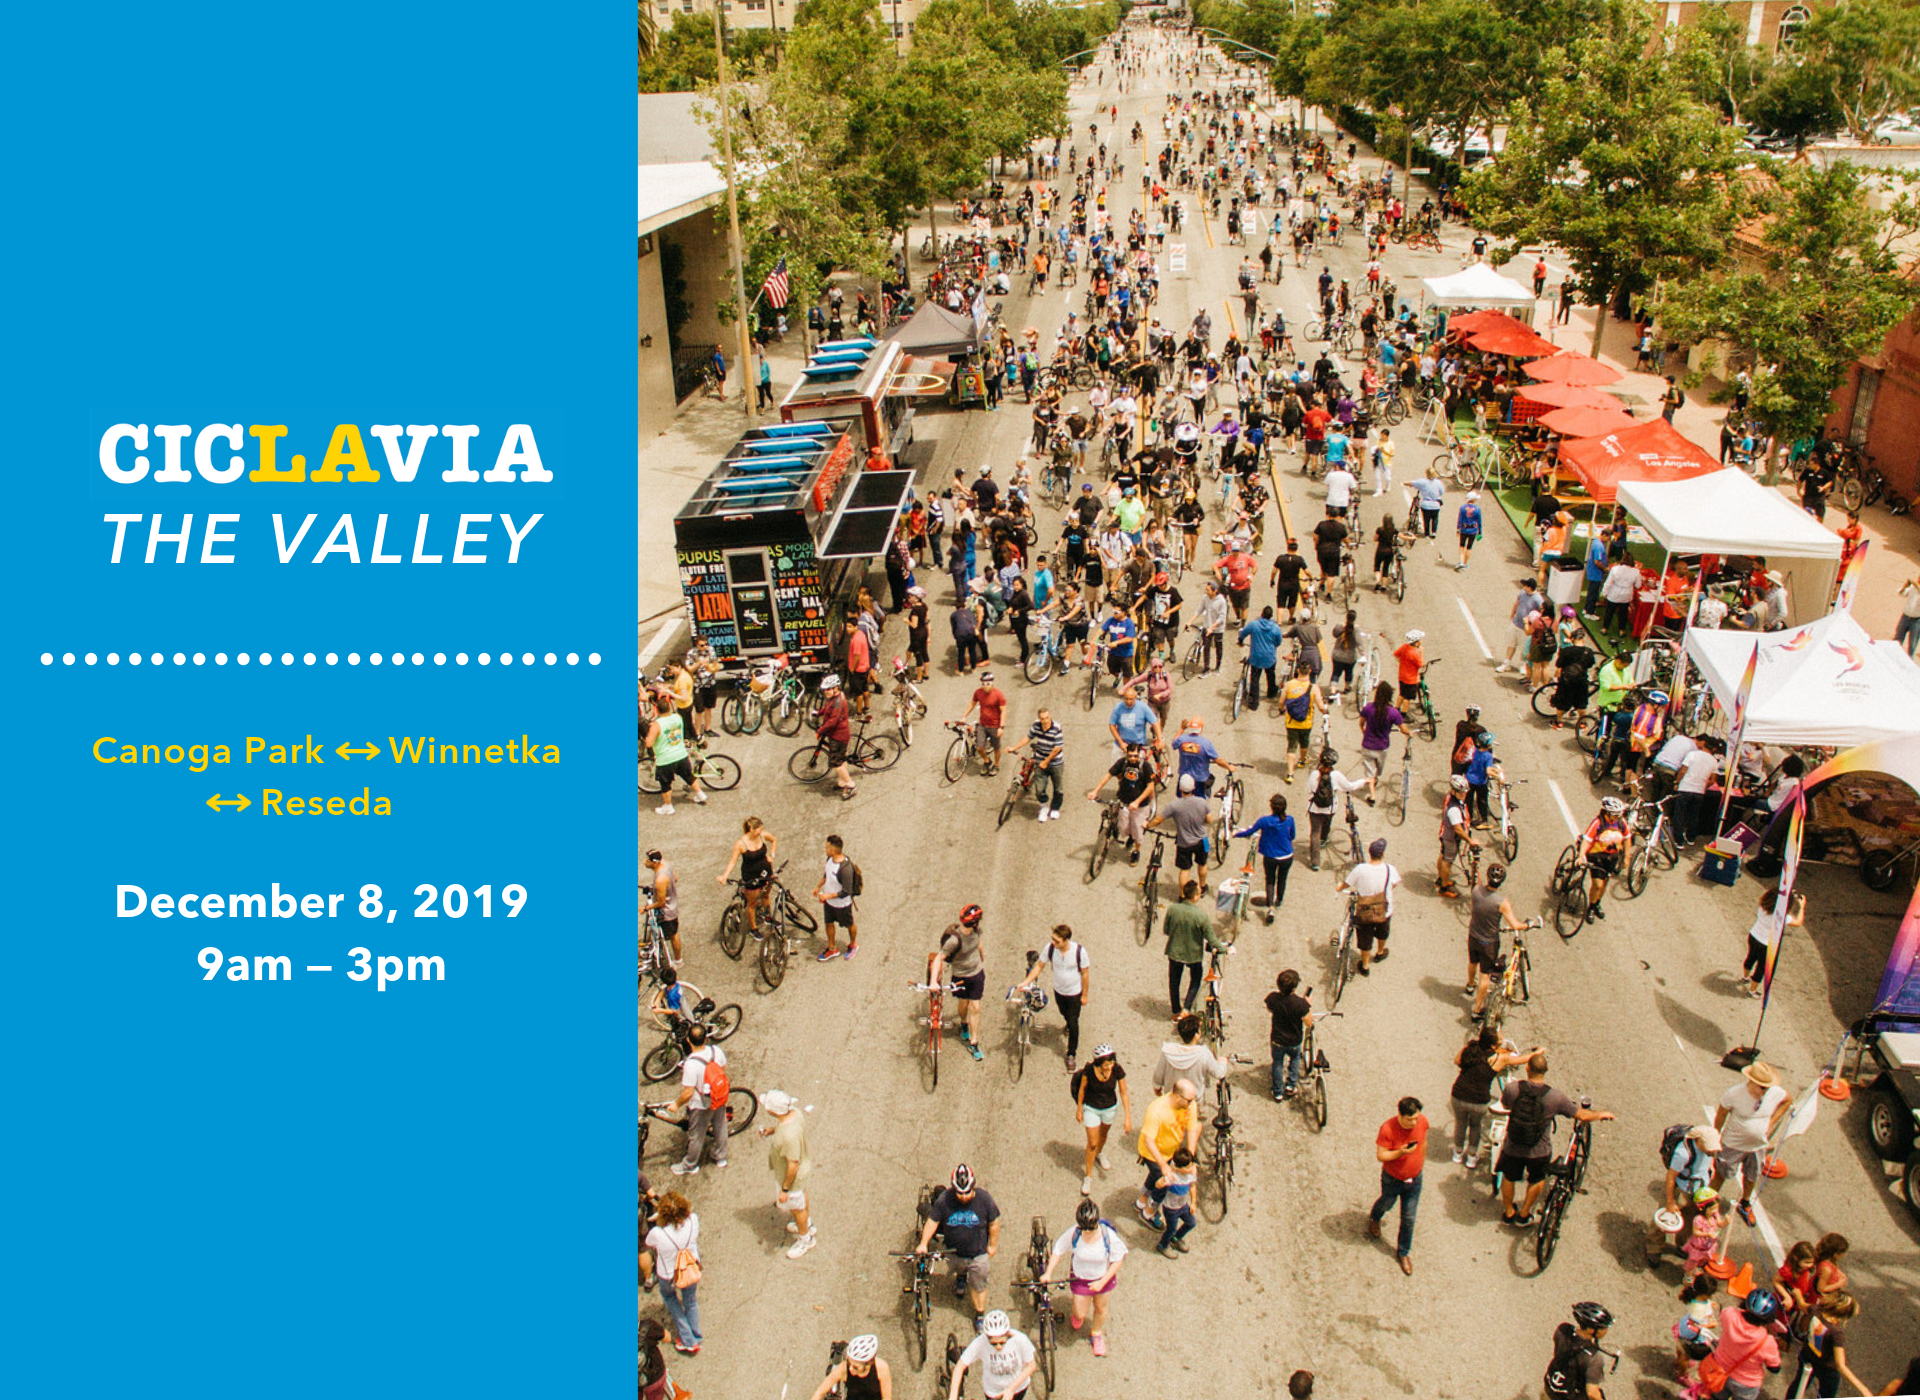 CicLAvia—The Valley